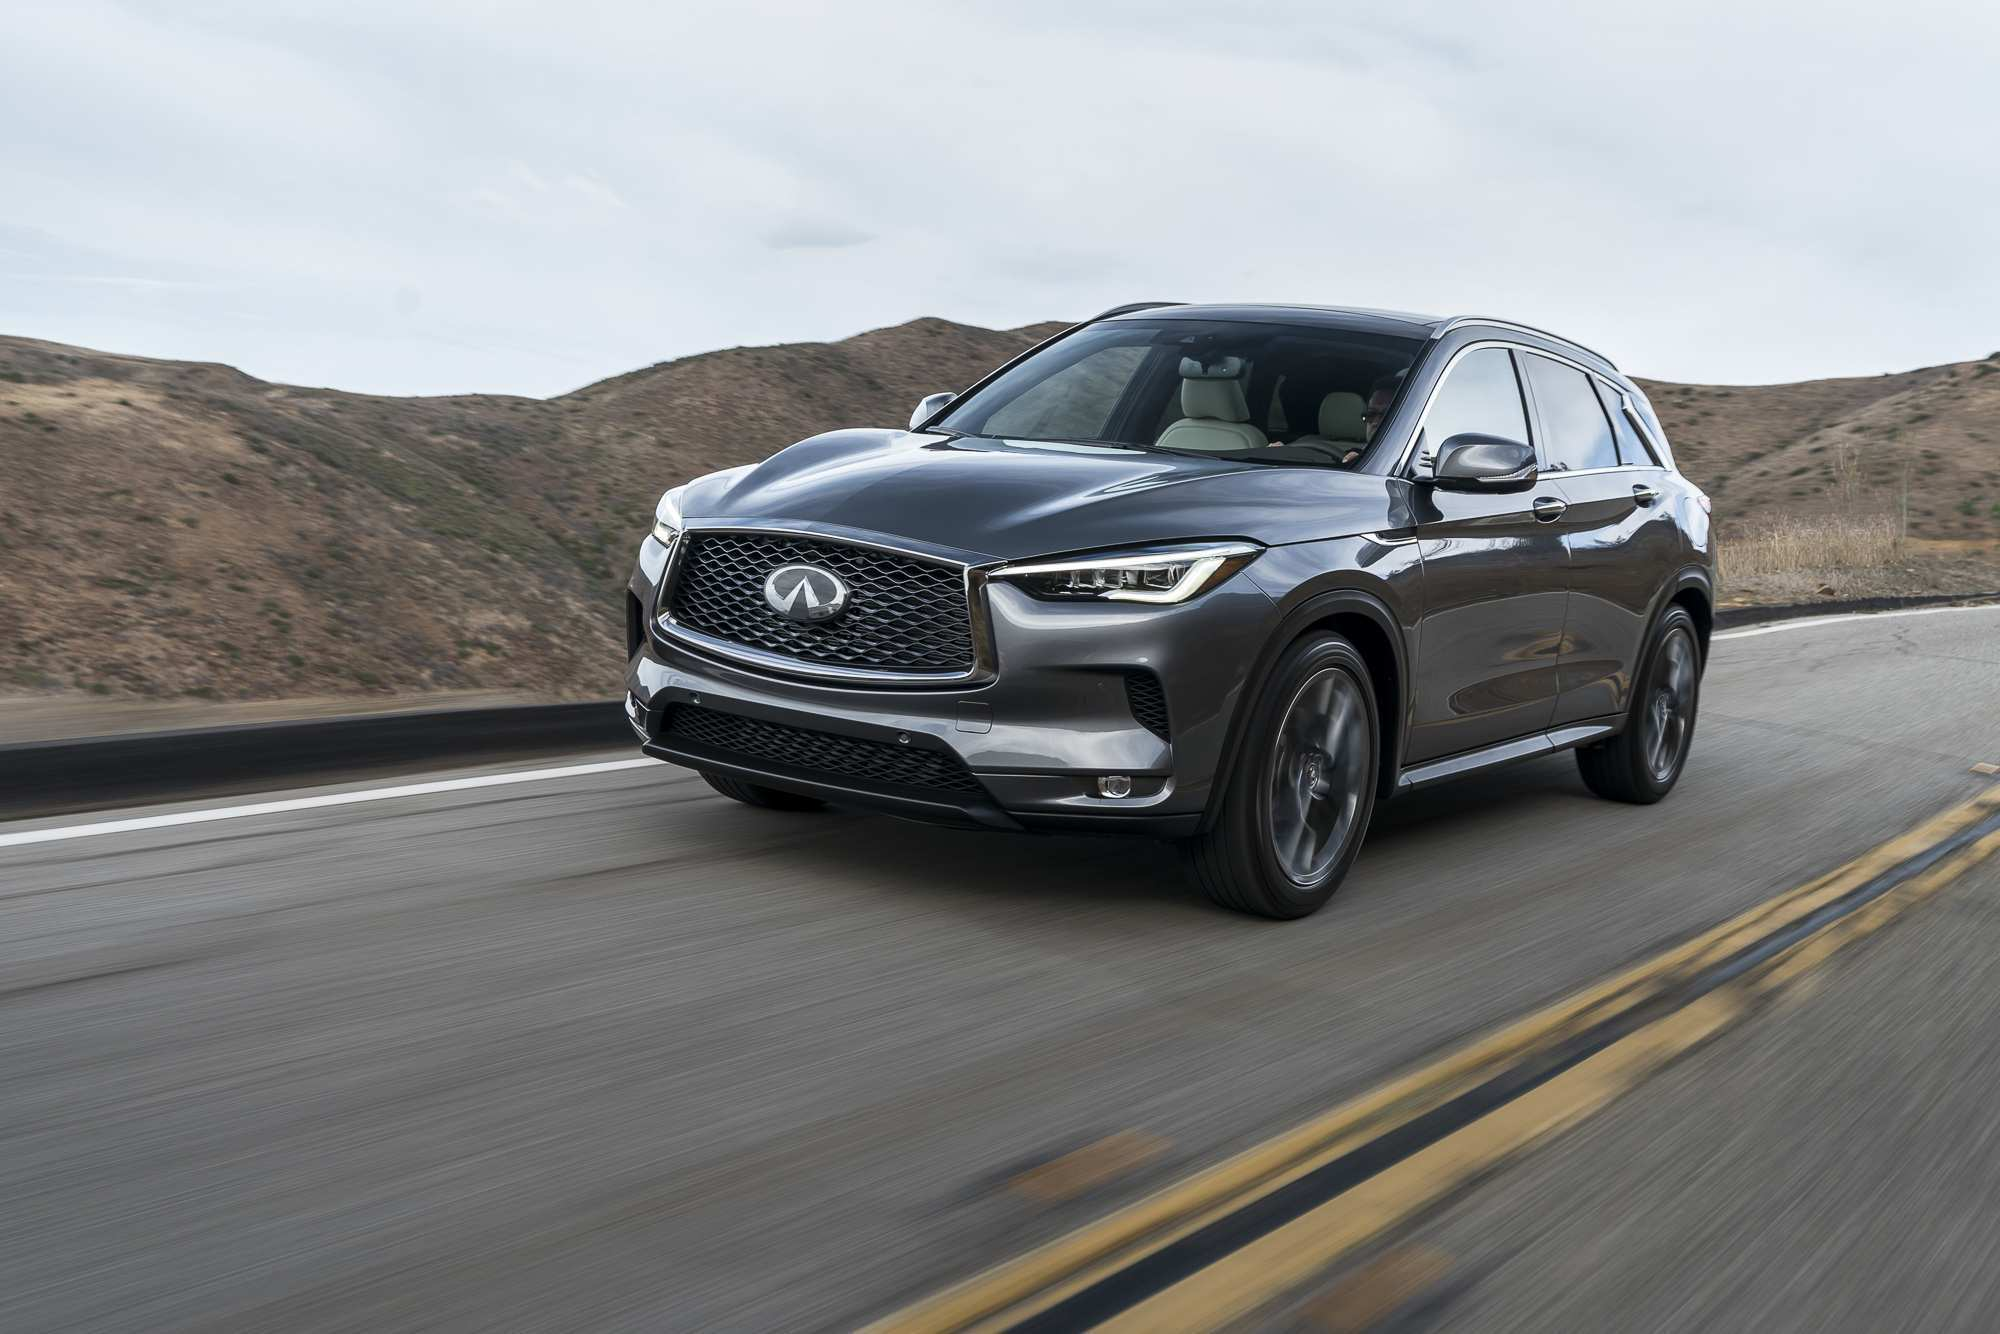 31 Gallery of 2020 Infiniti Qx50 Weight Redesign for 2020 Infiniti Qx50 Weight